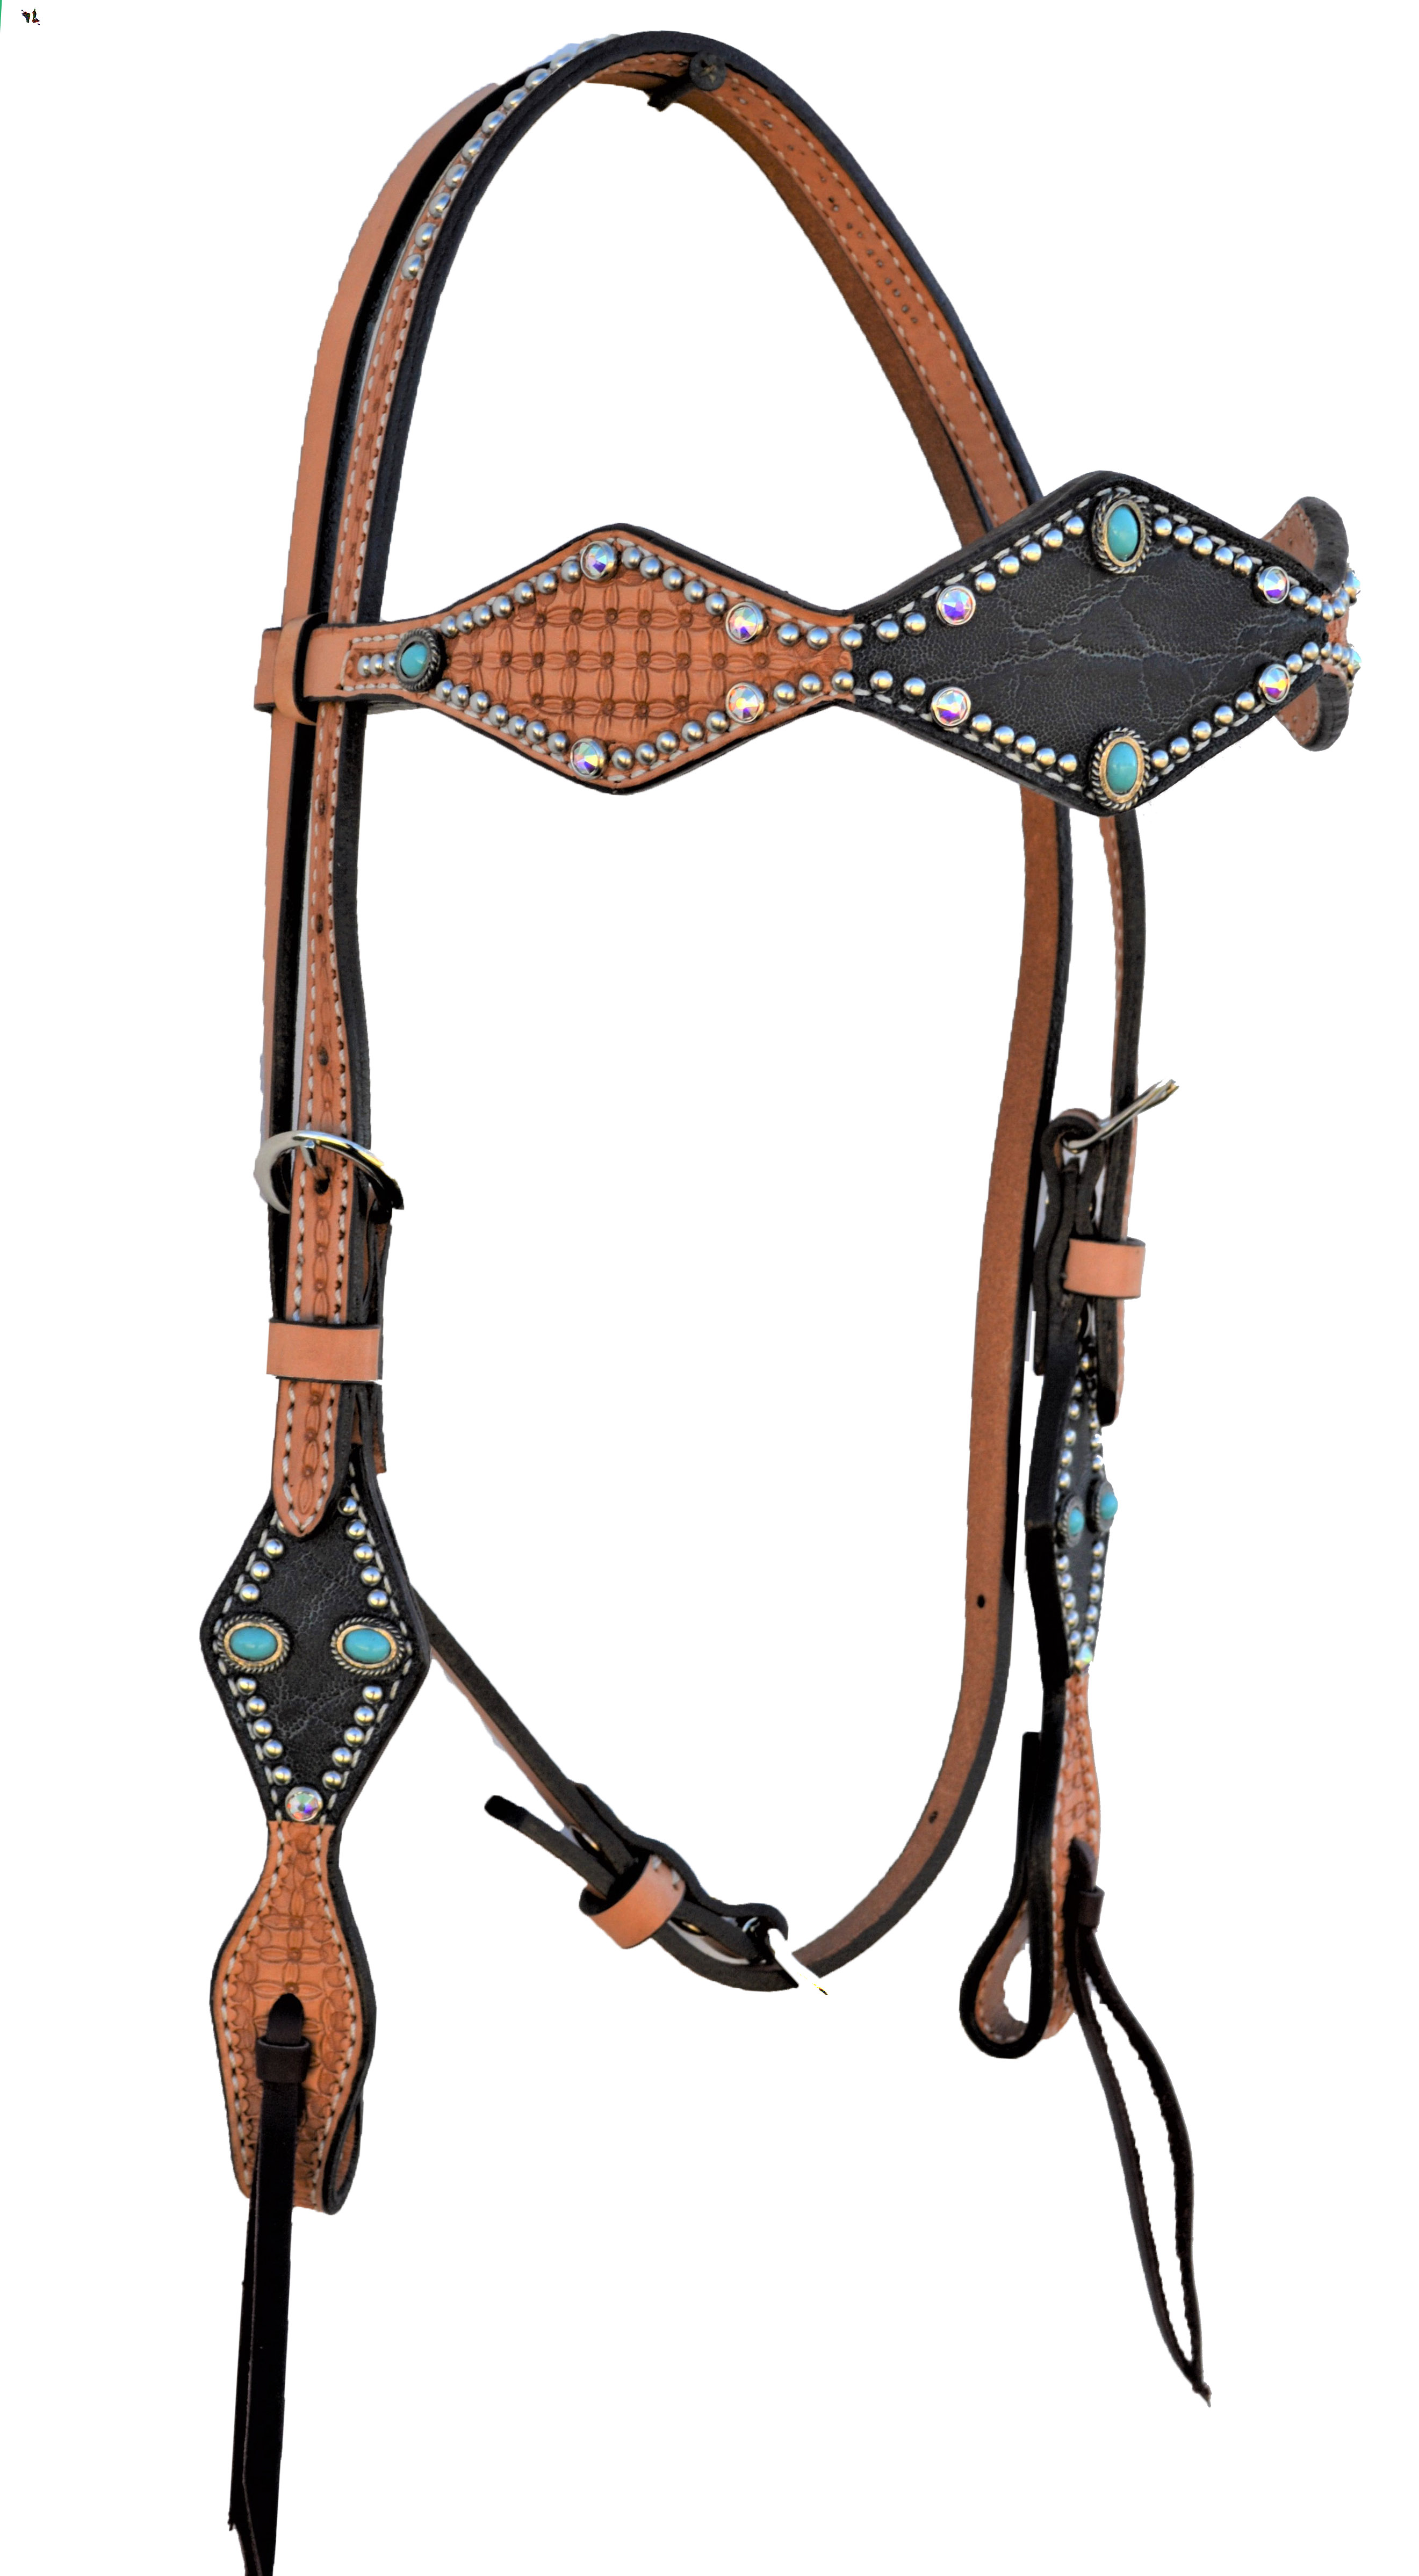 DIAMOND CUT HEADSTALL WITH GRAPHITE ELEPHANT OVERLAY AND TURQUOISE SPOTTING